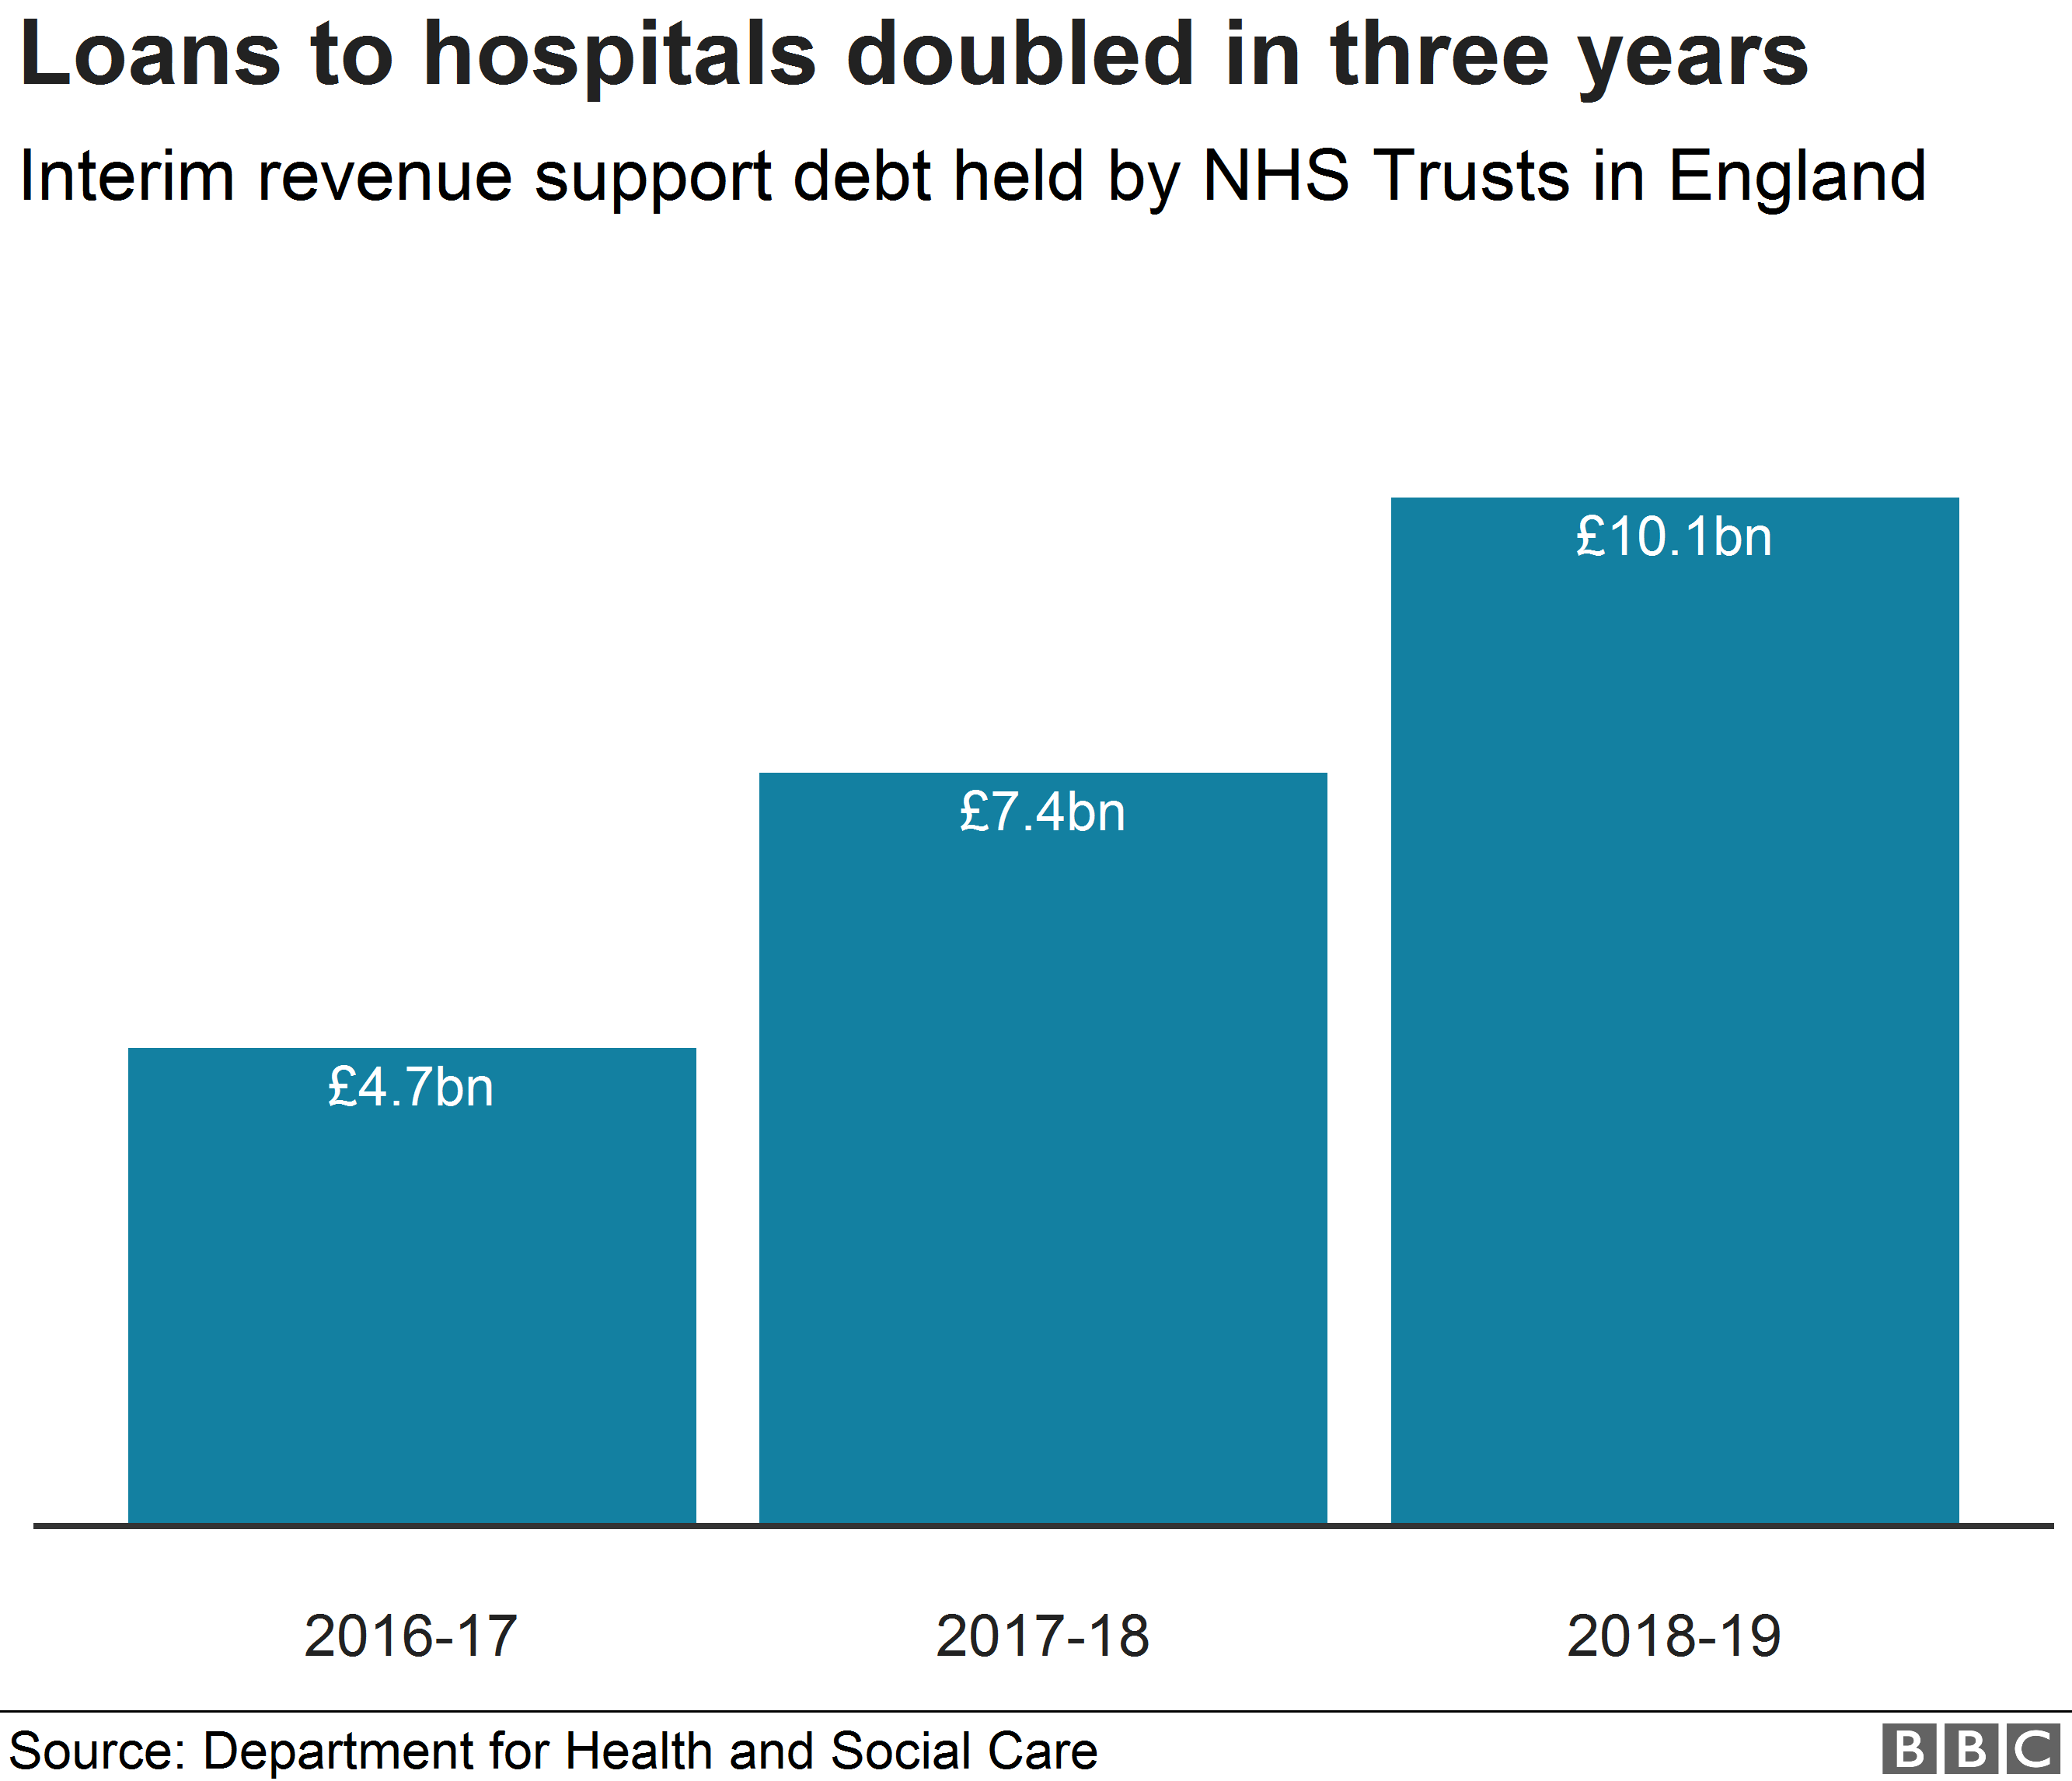 Total debt held by NHS trusts in England